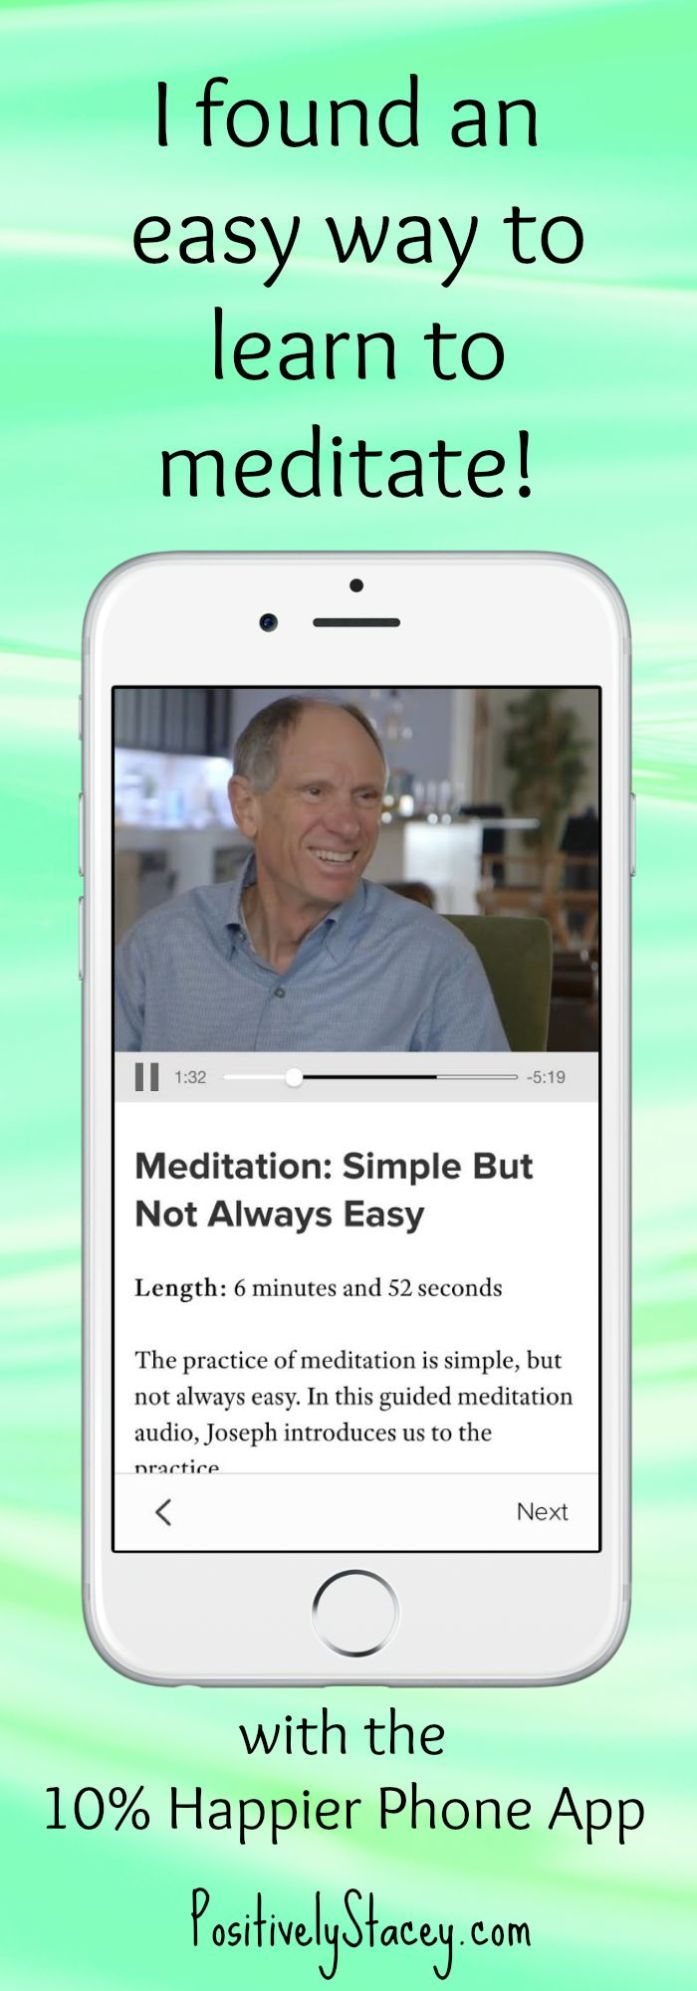 I Found an easy way to learn meditation! Check it out - it's a phone app. It really works!